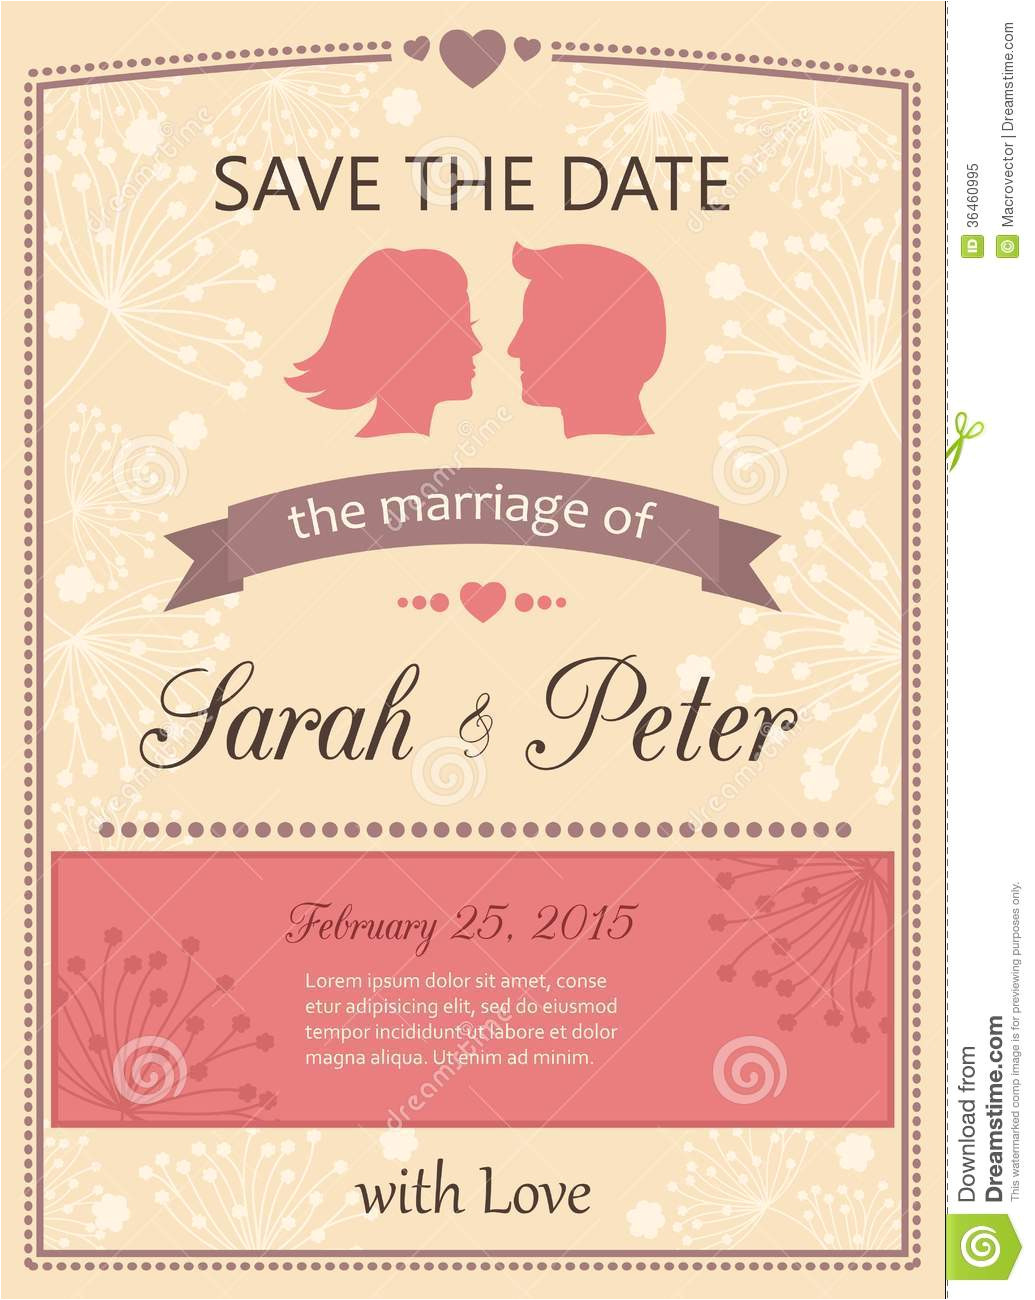 royalty free stock photo save date wedding invitation card template vector illustration image36460995